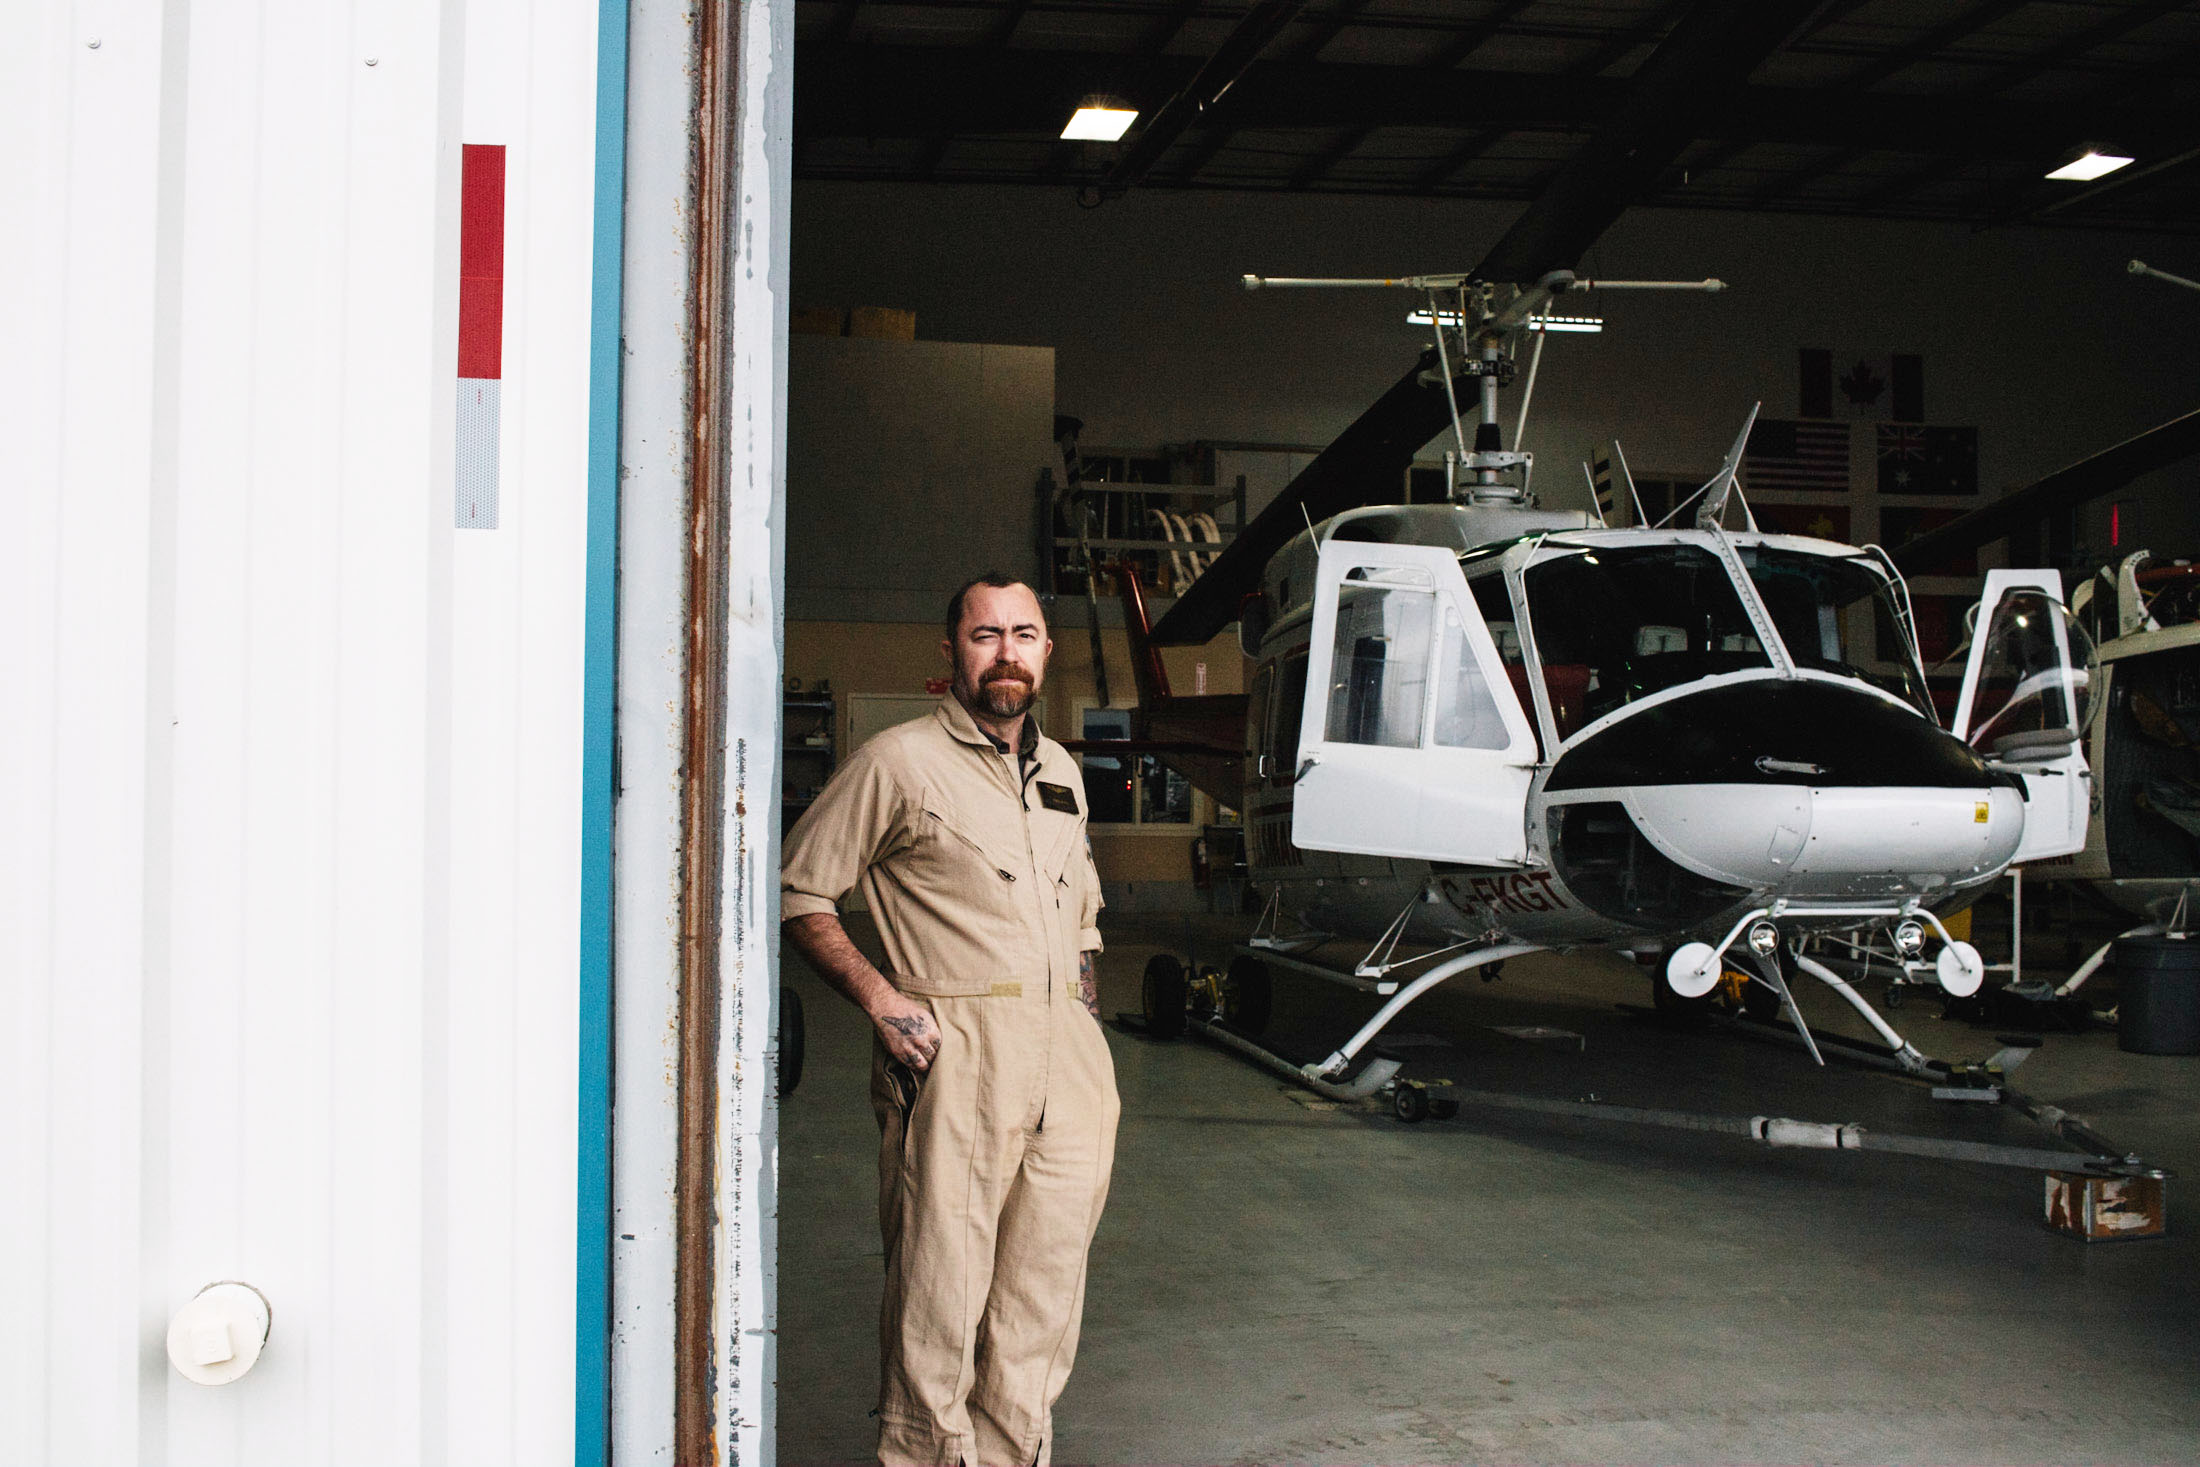 Helicopter pilot at garage